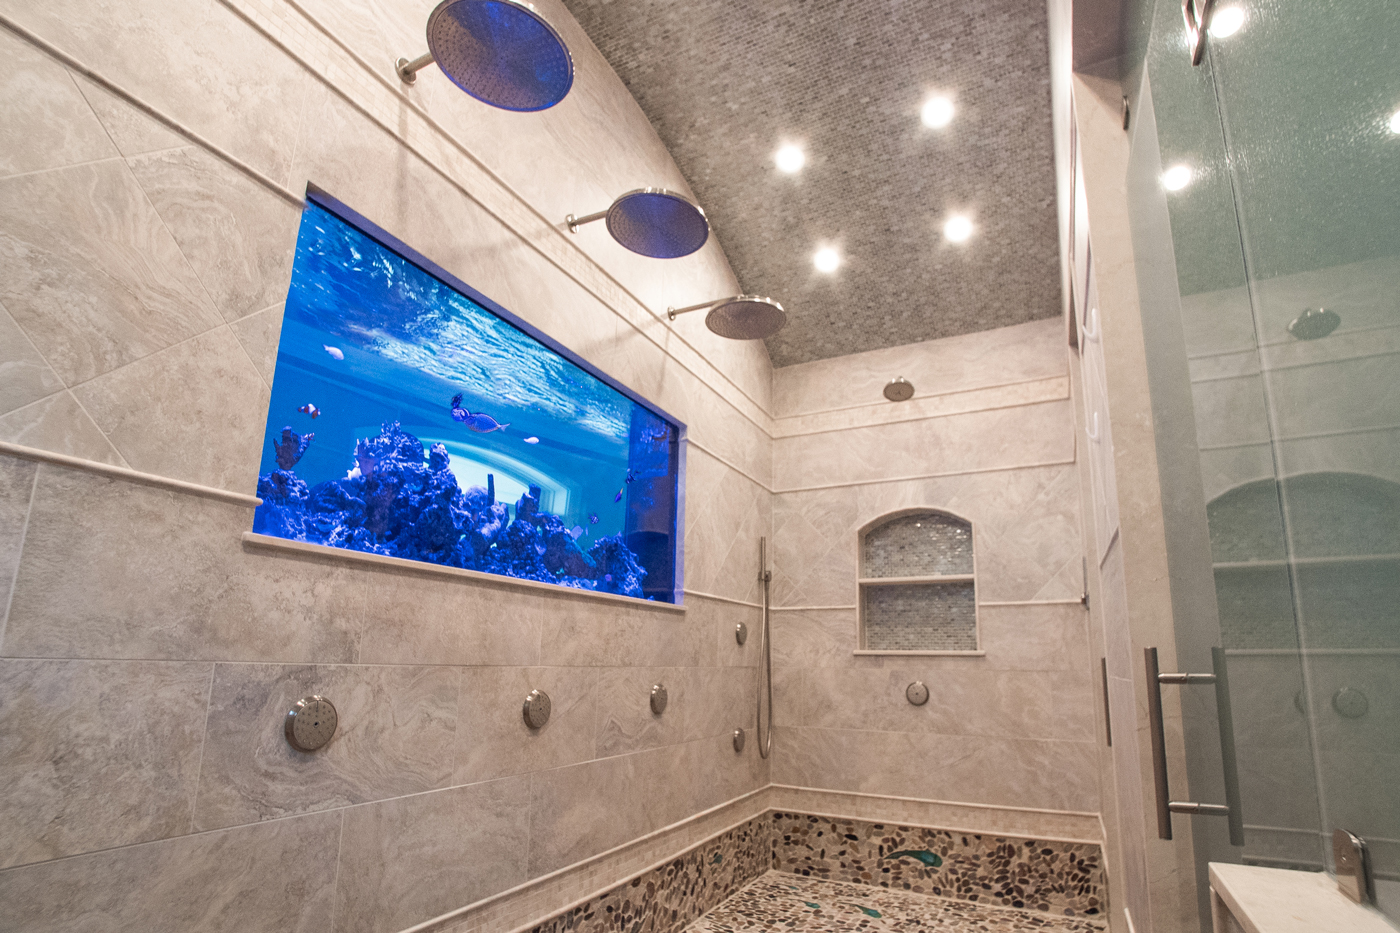 One side of this NJ beach house aquarium faces into a bathroom shower stall